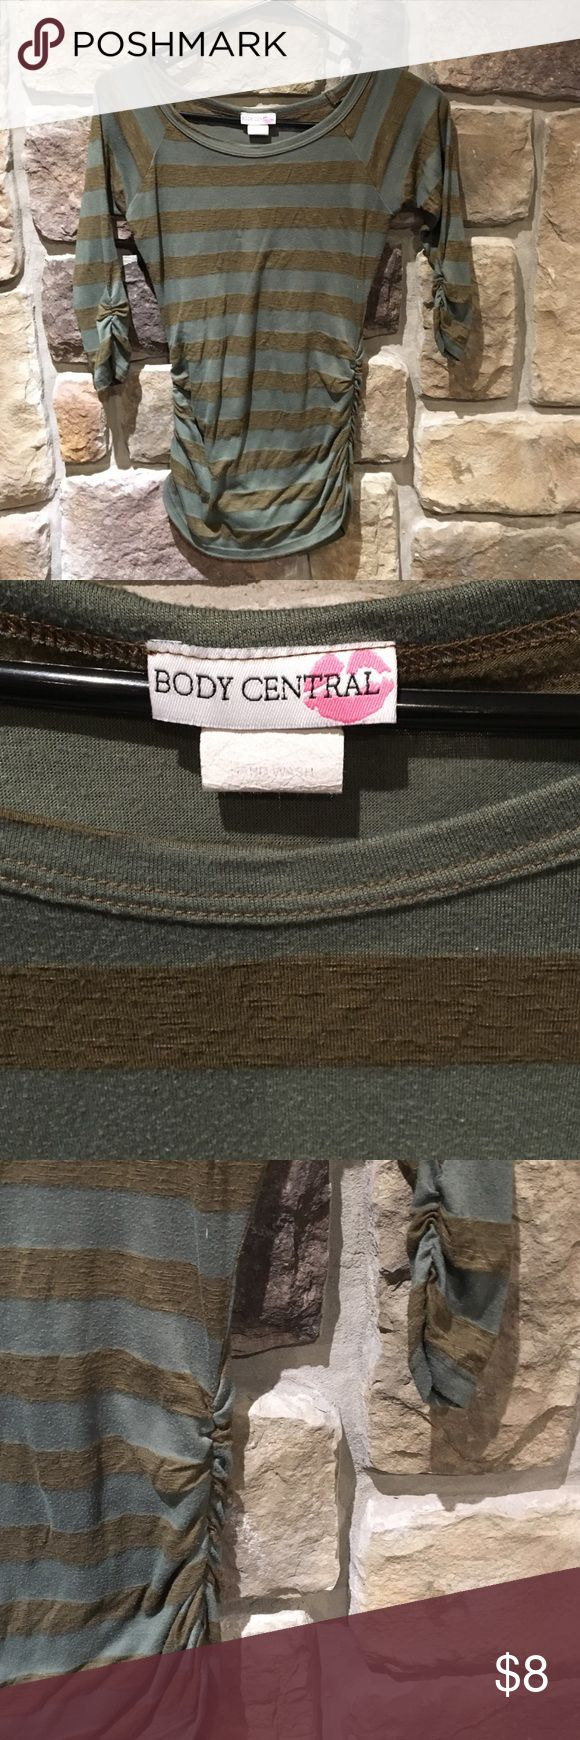 Body Central green & brown shirt size medium Body Central green & brown shirt size medium. Body Central Tops Tees - Long Sleeve